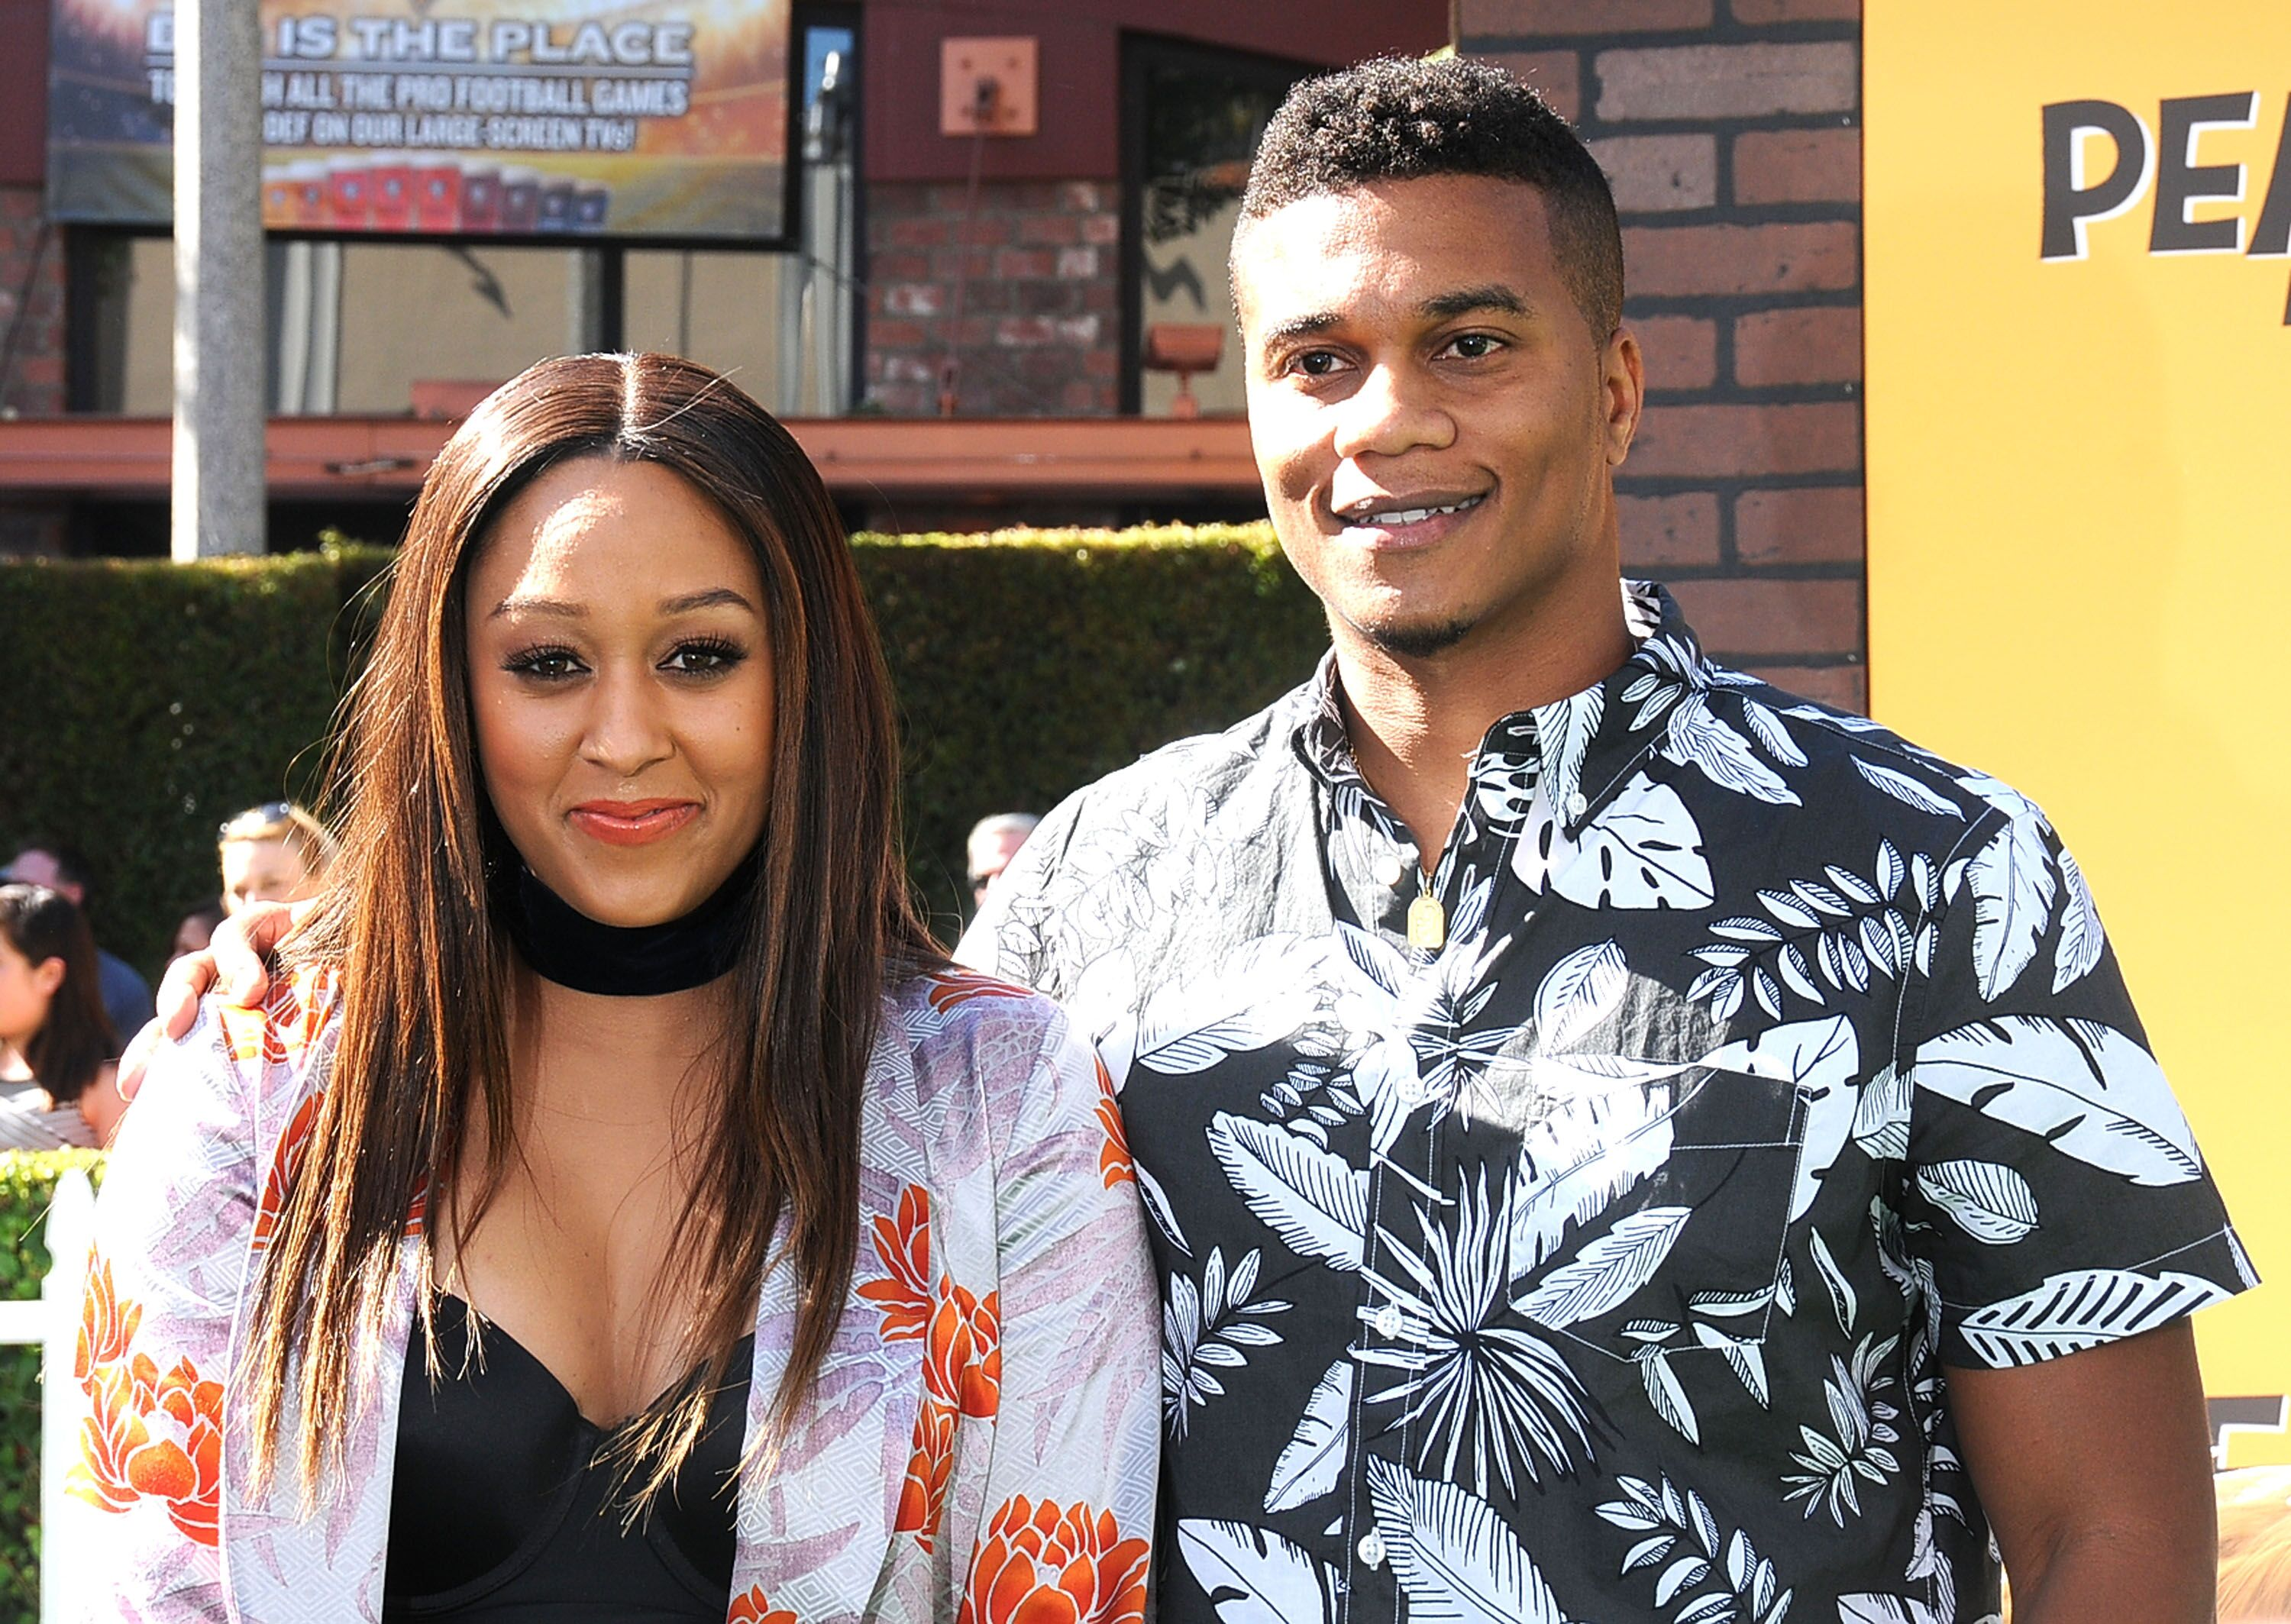 Tia Mowry and Cory Hardrict at the Regency Village Theatre on November 1, 2015 in Westwood, California   Photo: Getty Images